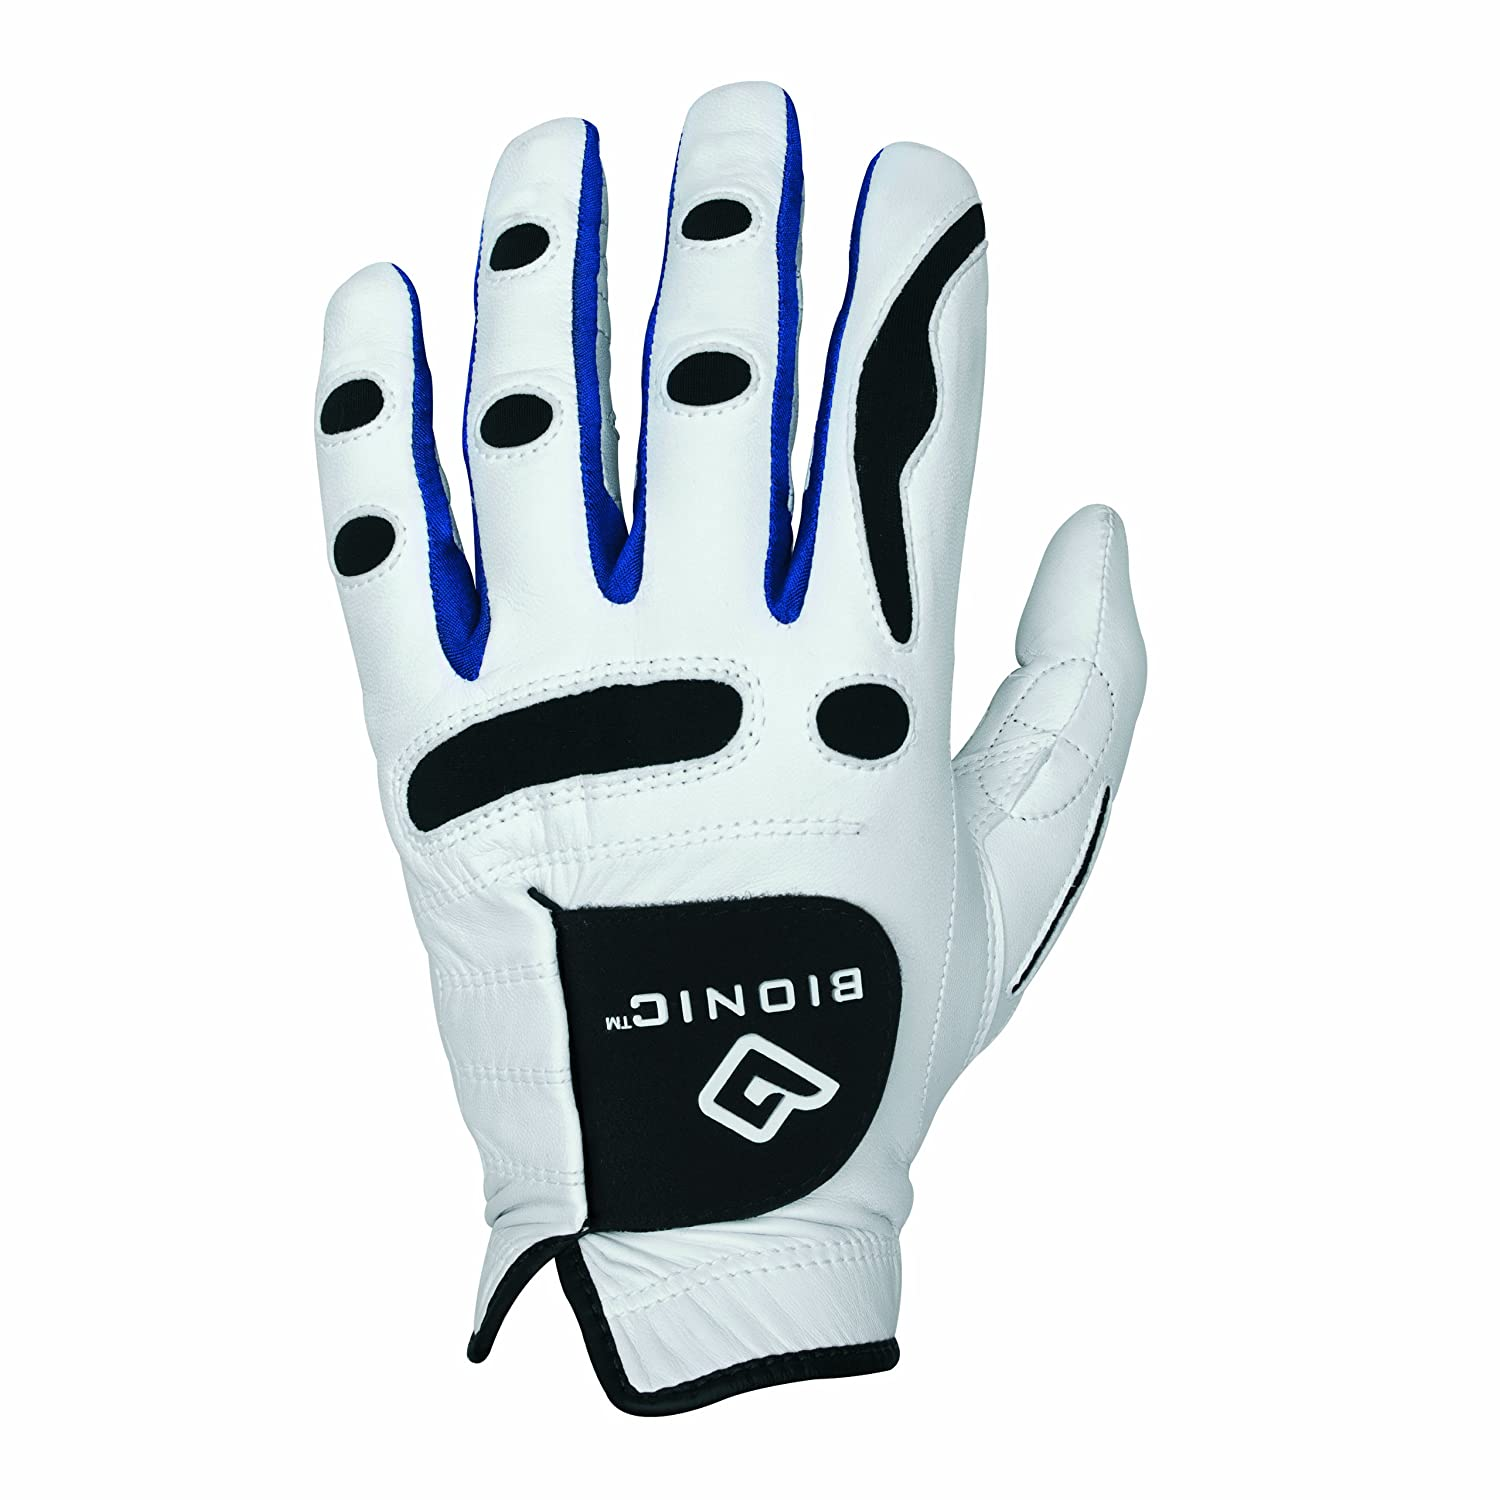 Mens leather gloves amazon uk - Bionic Mens Performancegrip Golf Glove Leather Lh Right Handed Golfer Amazon Co Uk Sports Outdoors